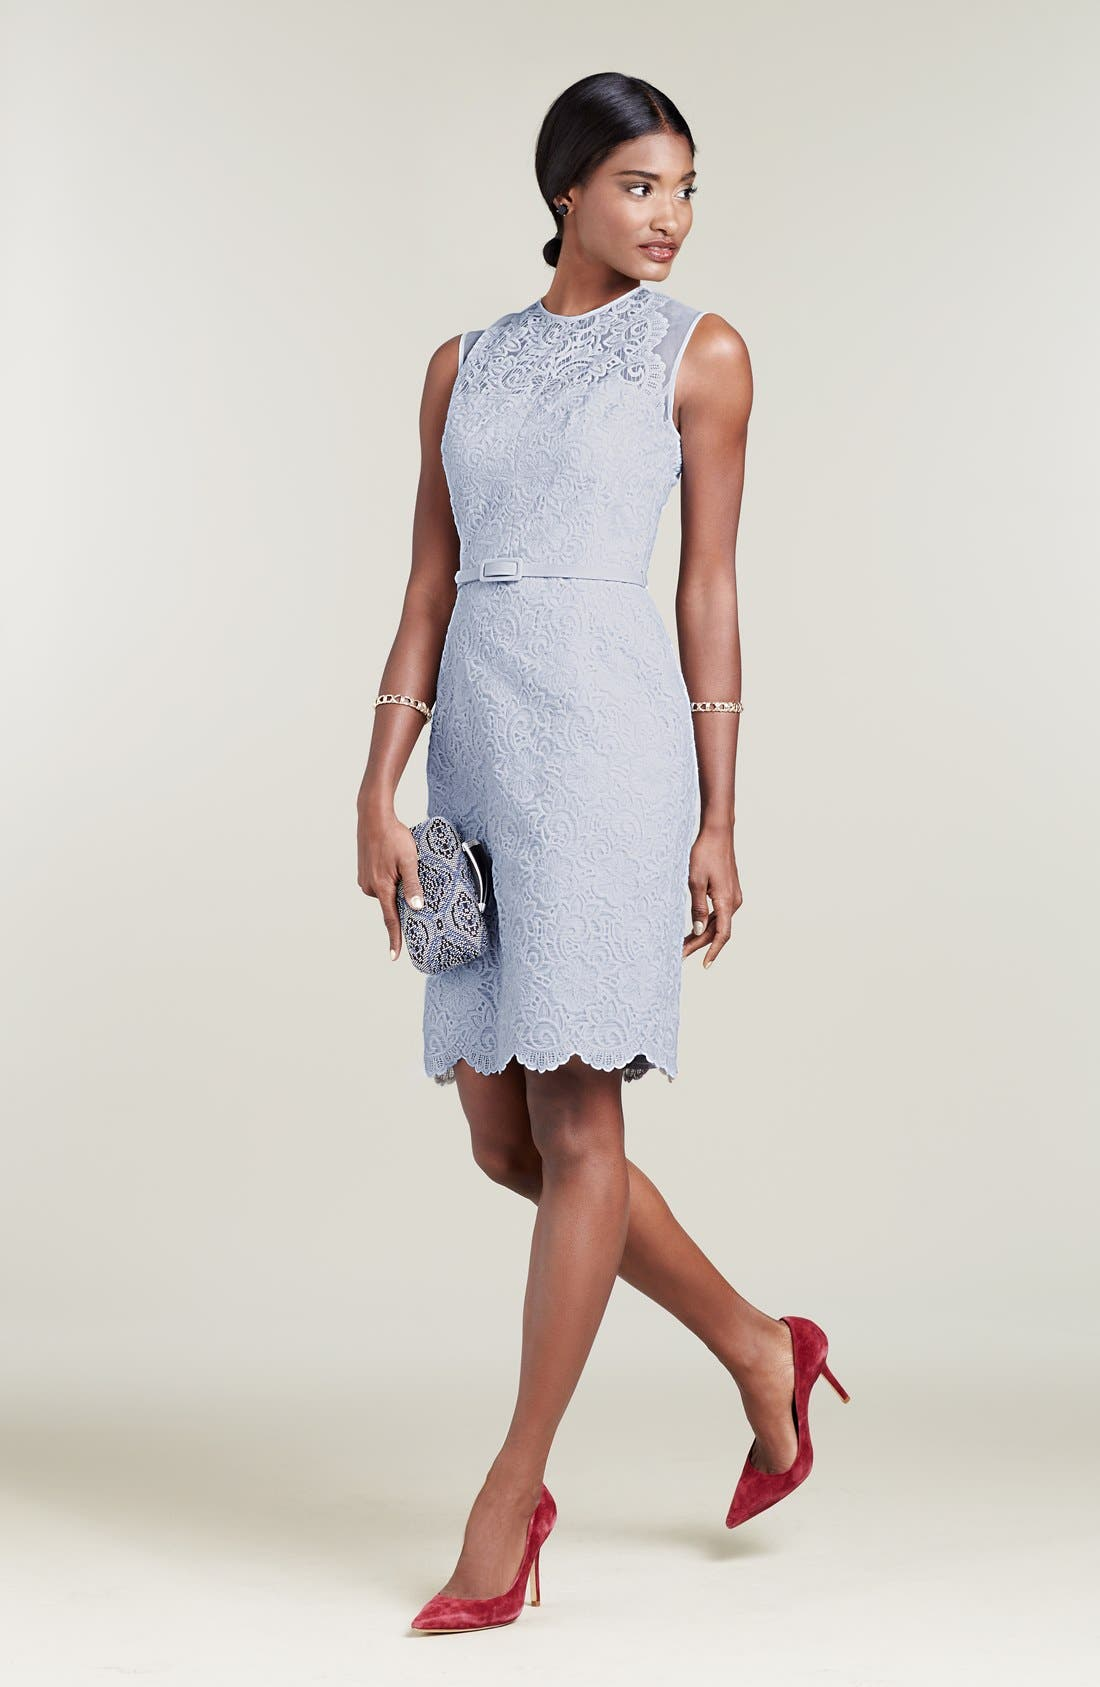 Alternate Image 1 Selected - Maggy London Sheath Dress & Accessories